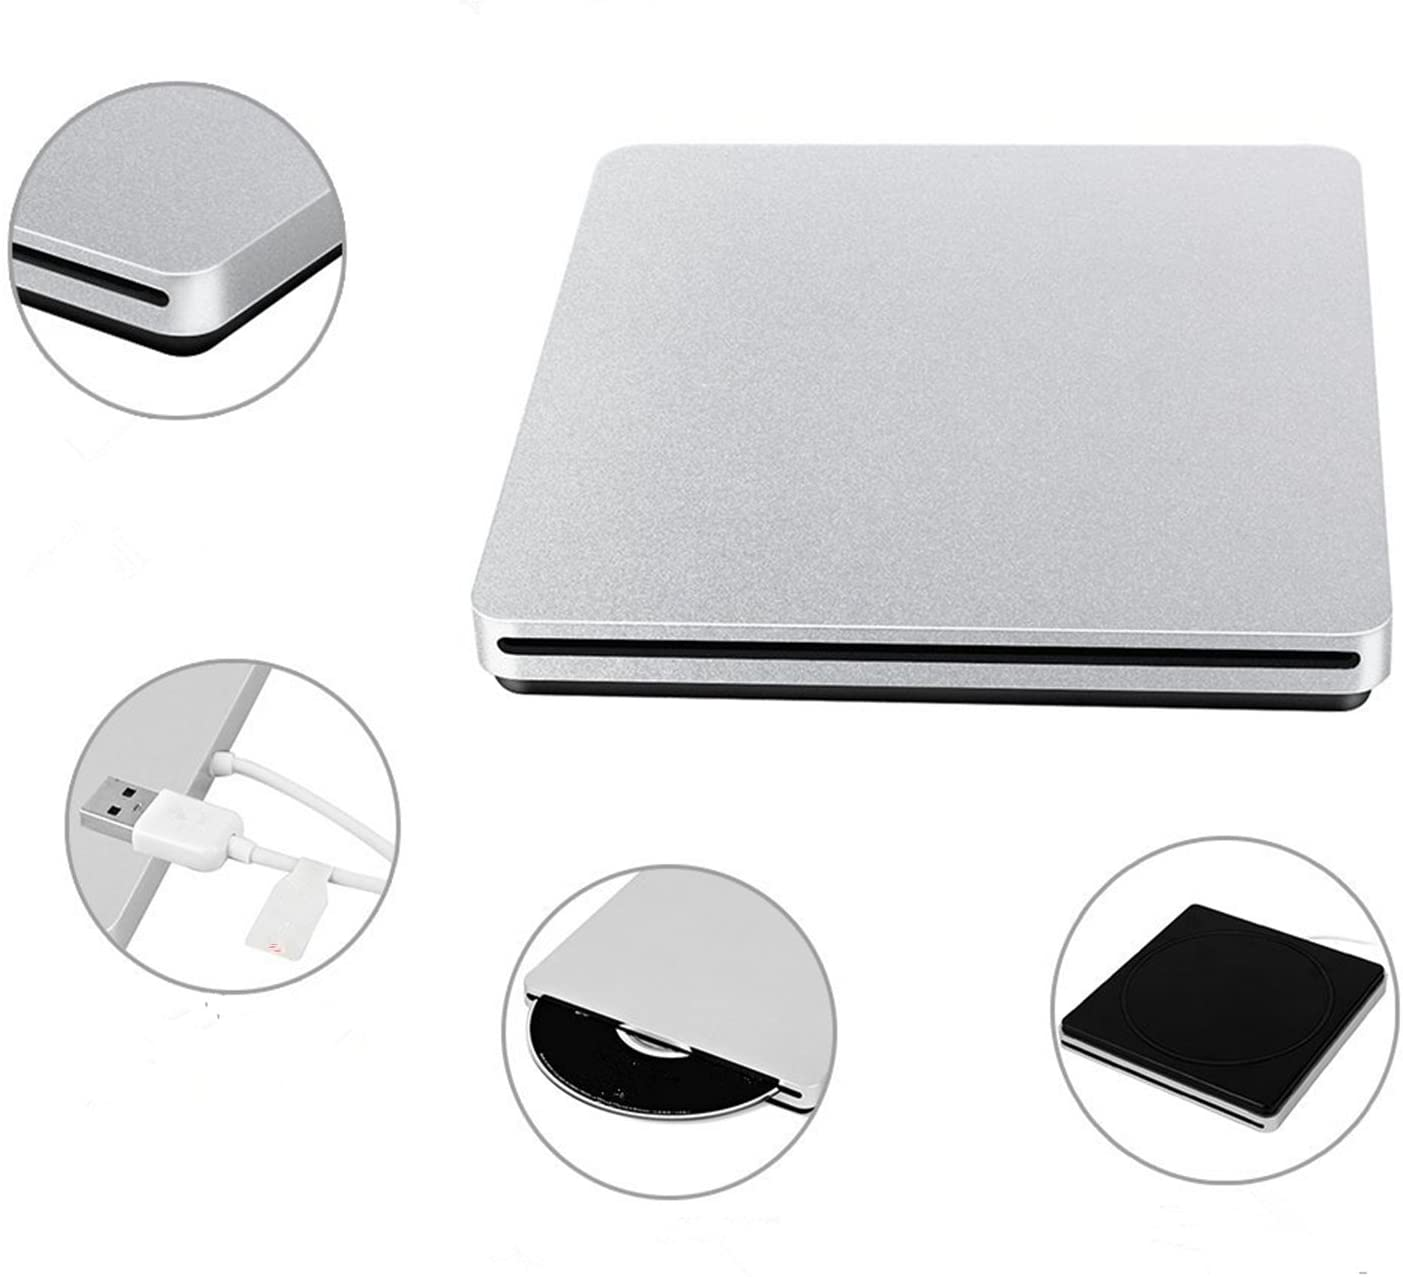 USB 2.0 Portable External DVD CD Drive Burner/Writer high Speed Transfer with Super Compatibility for Laptops PC/Apple MacBook Pro (Silver)